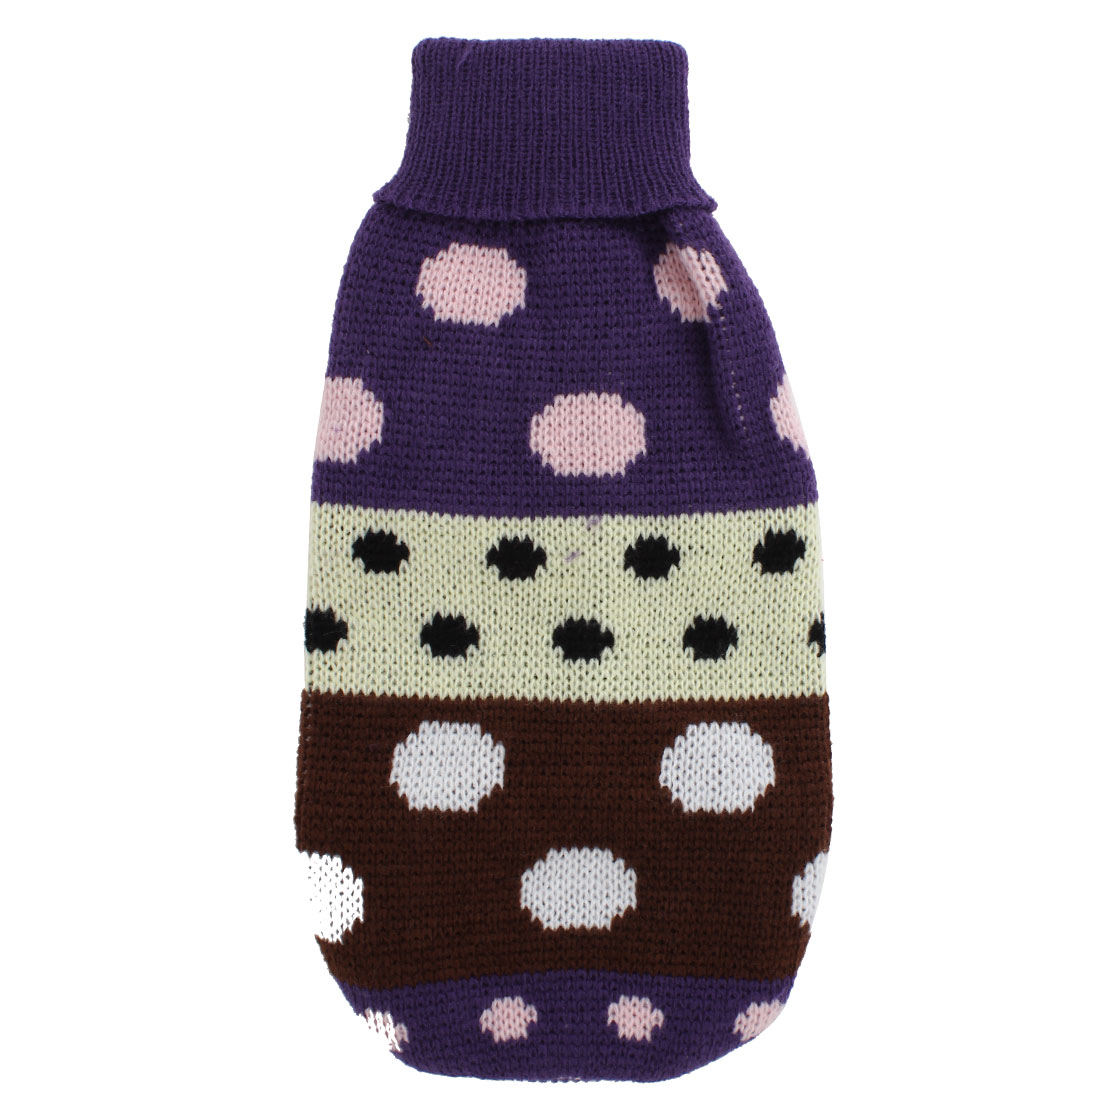 Pet Dog Puppy Ribbed Cuff Knitwear Turtleneck Warm Apparel Sweater Assorted Color Size XXS